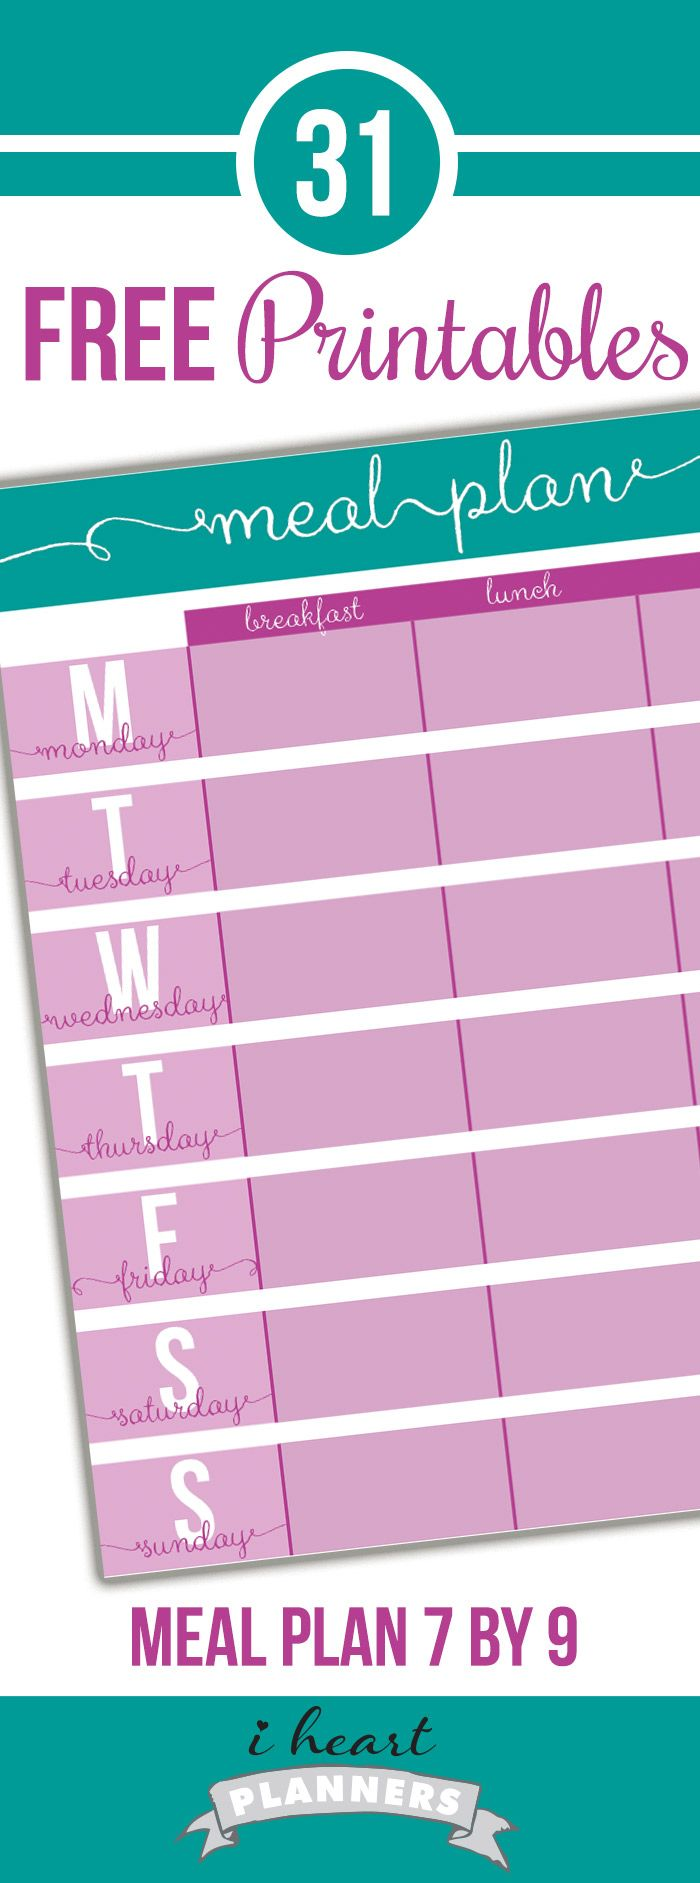 Free printable menu planner to go in life planners (like Erin Condren or Plum Paper). It prints on regular letter paper and has crop marks so you can trim to it to size. (It perfectly matches the size of the Erin Condren/Plum Paper planners). Then you can use coil clips to put it in your planner.